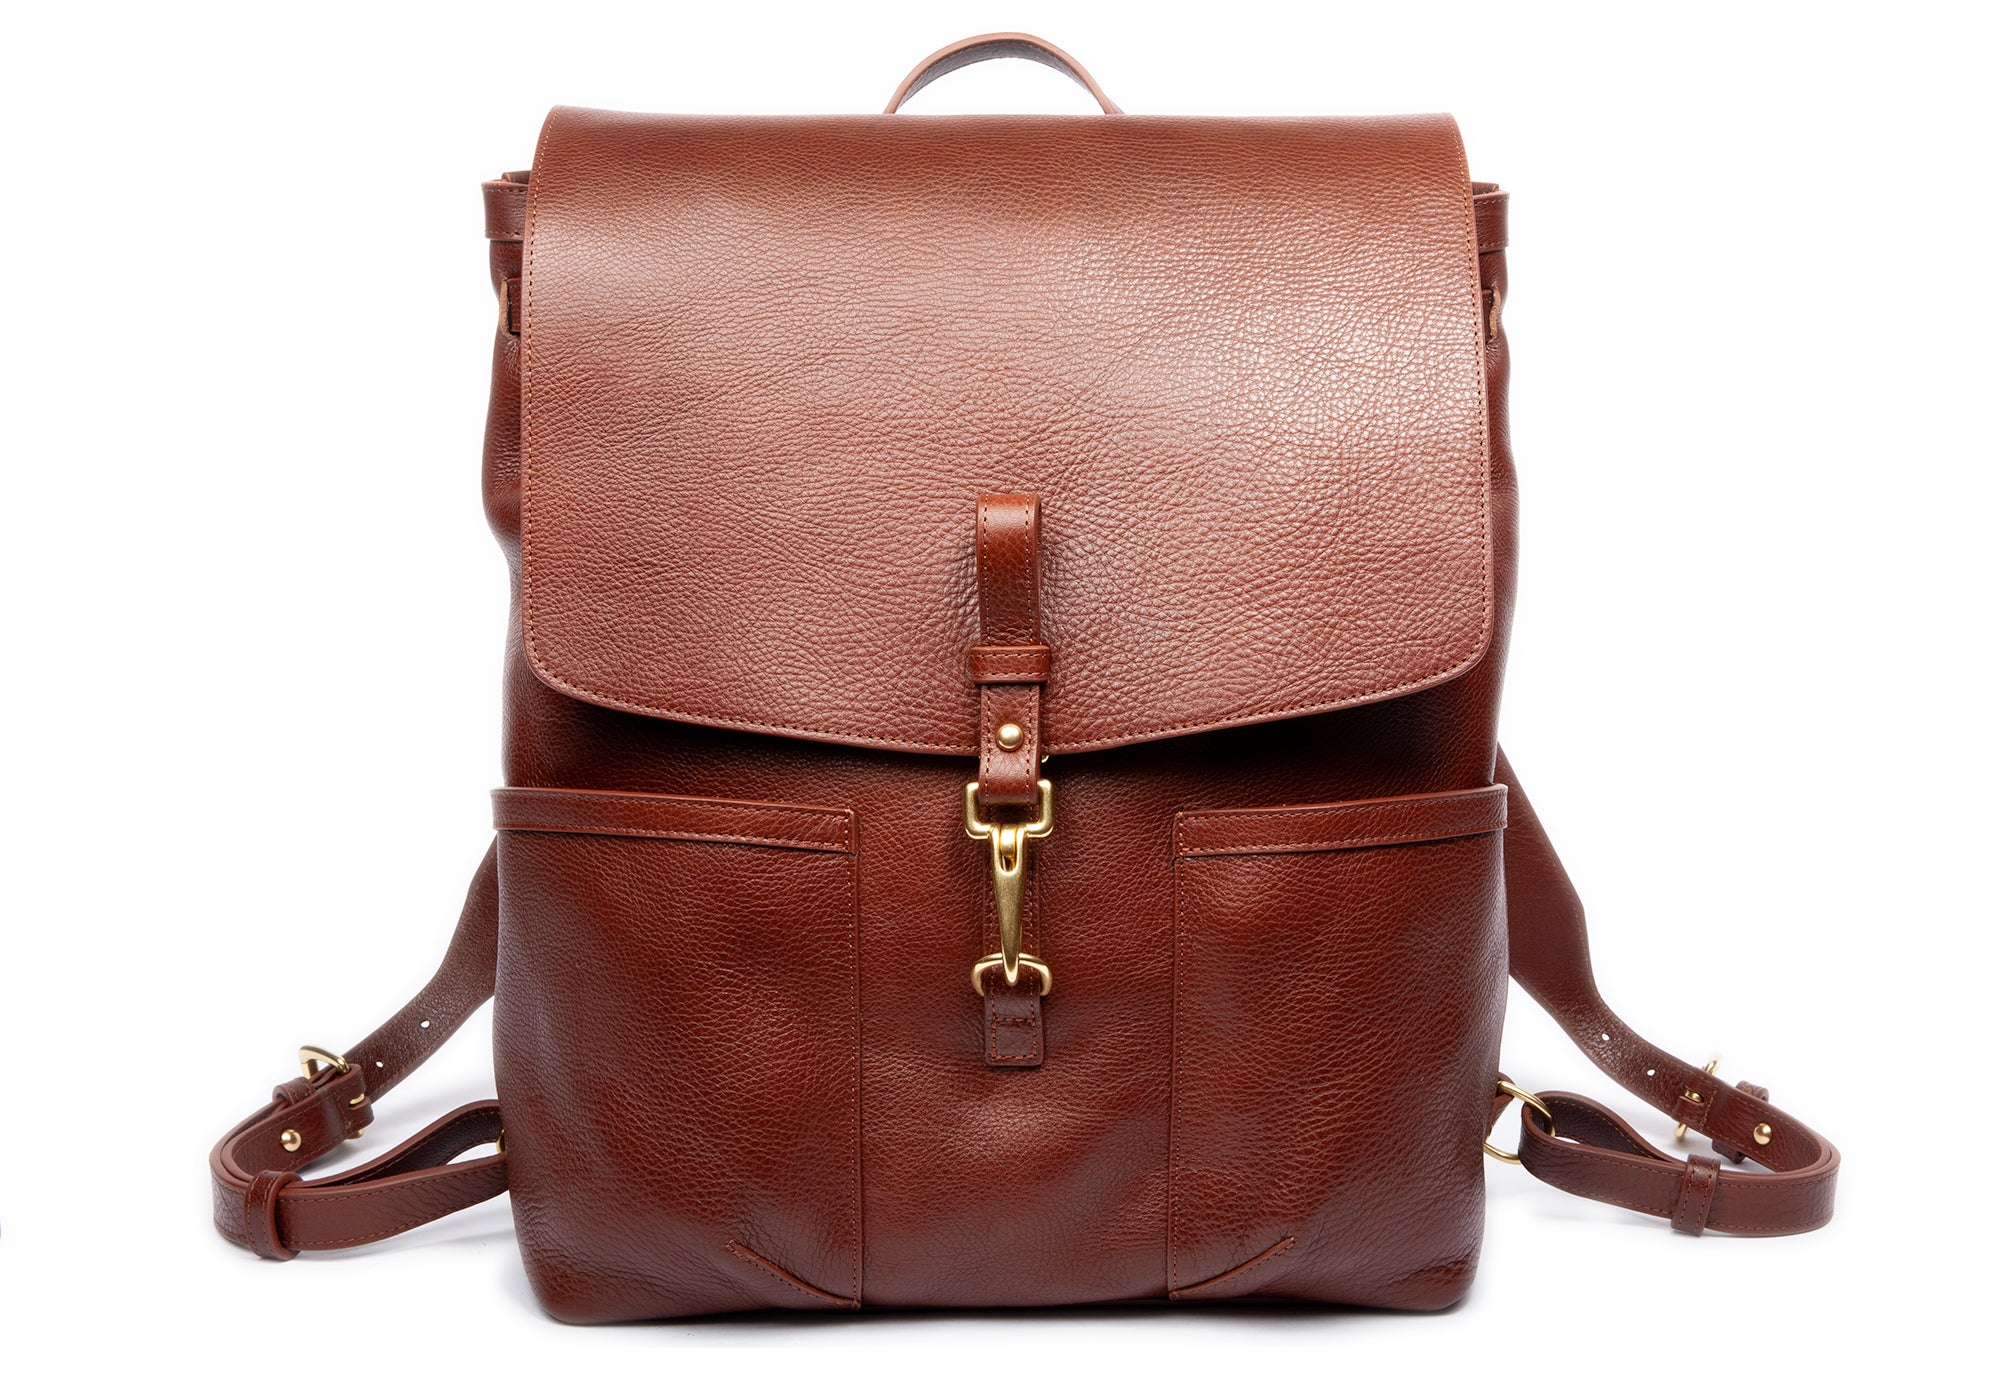 Front View of Leather Knapsack Chestnut